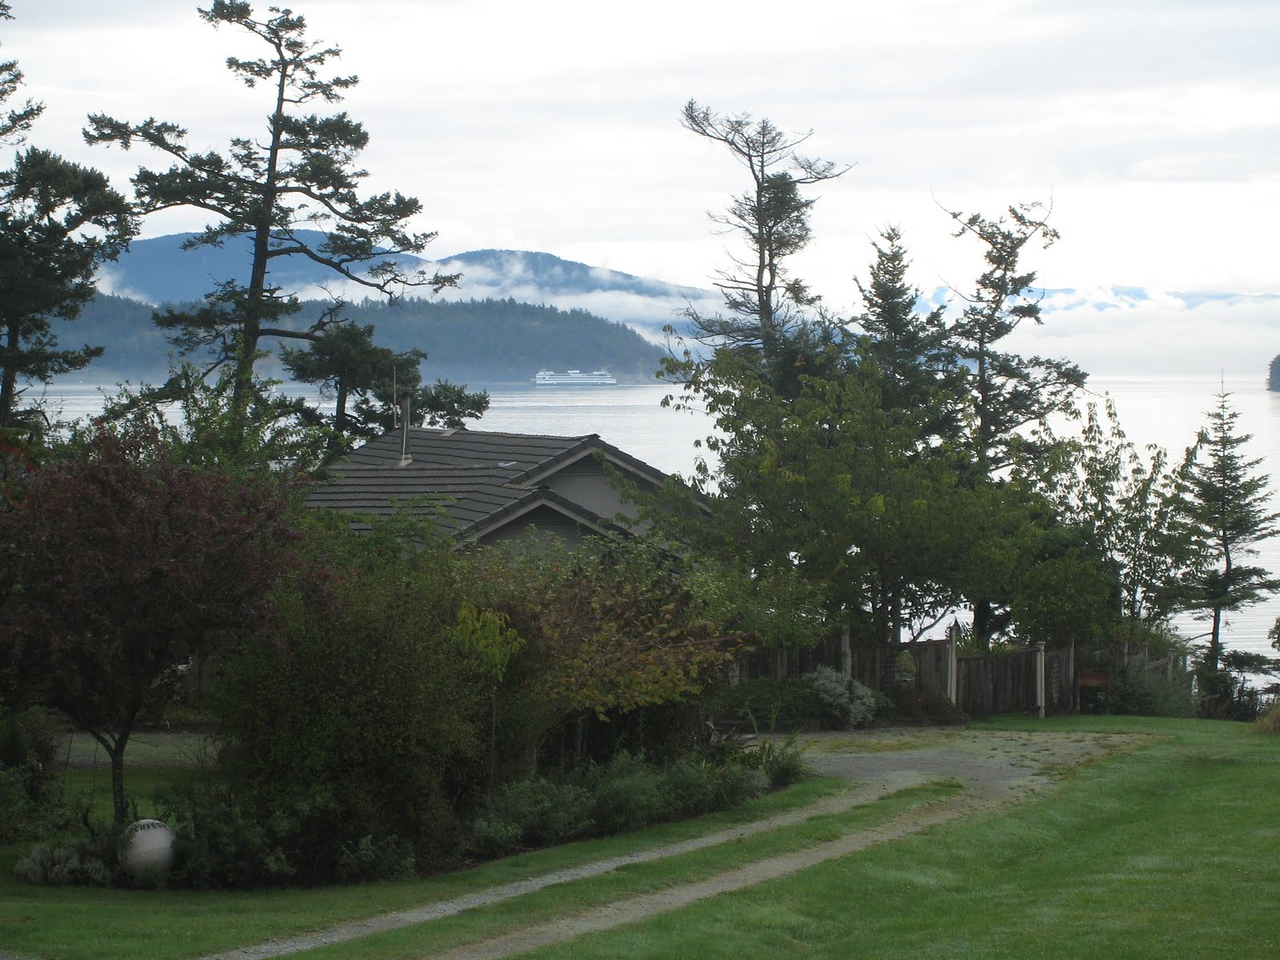 View from the porch of the Lopez house